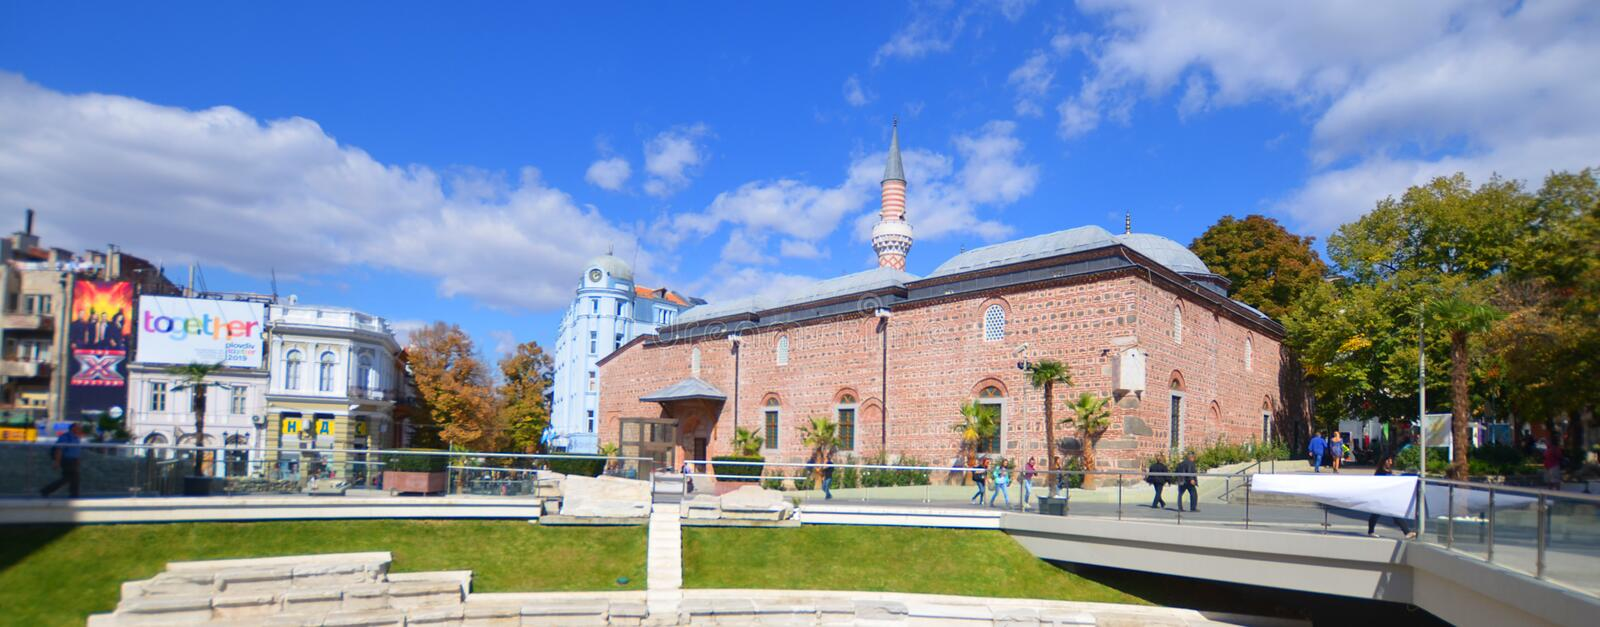 Djumaya Mosque or Ulu Mosque. PLOVDIV BULGARIA SEPT 18: Djumaya Mosque or Ulu Mosque, is a precious architectural monument in Plovdiv that gives an idea of the royalty free stock photography